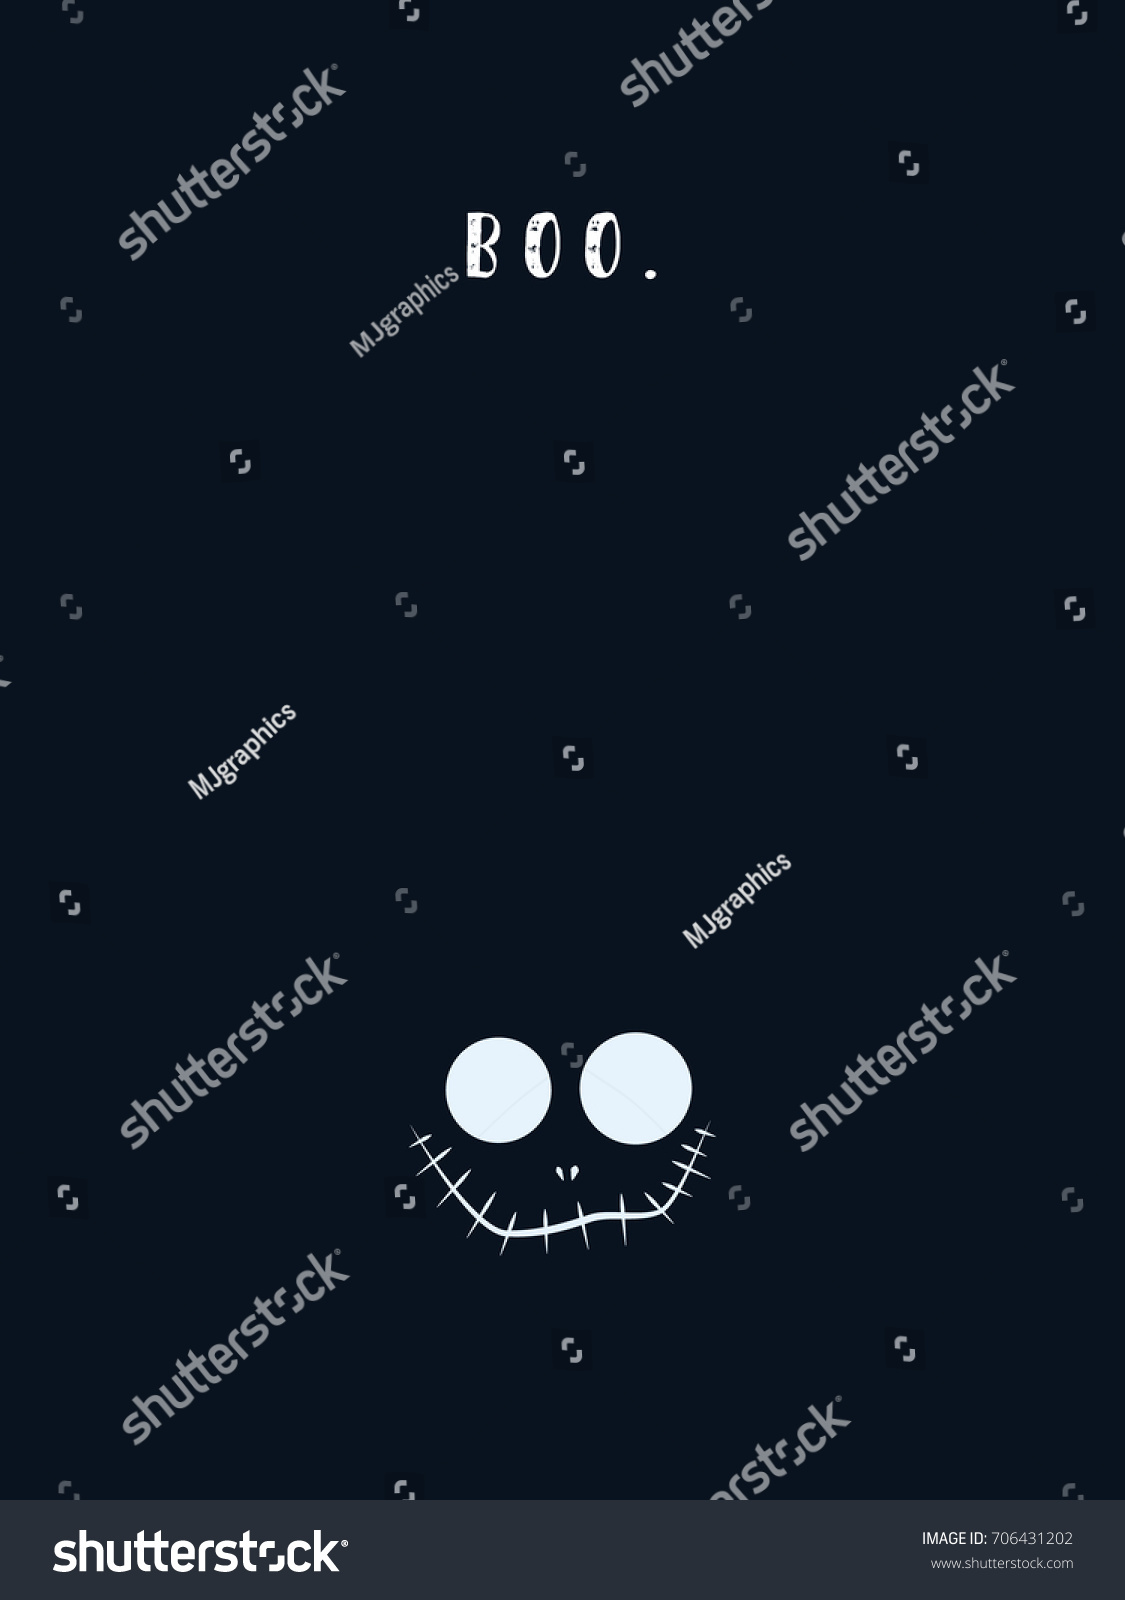 Scary template eliolera download halloween powerpoint templates for free toneelgroepblik Choice Image